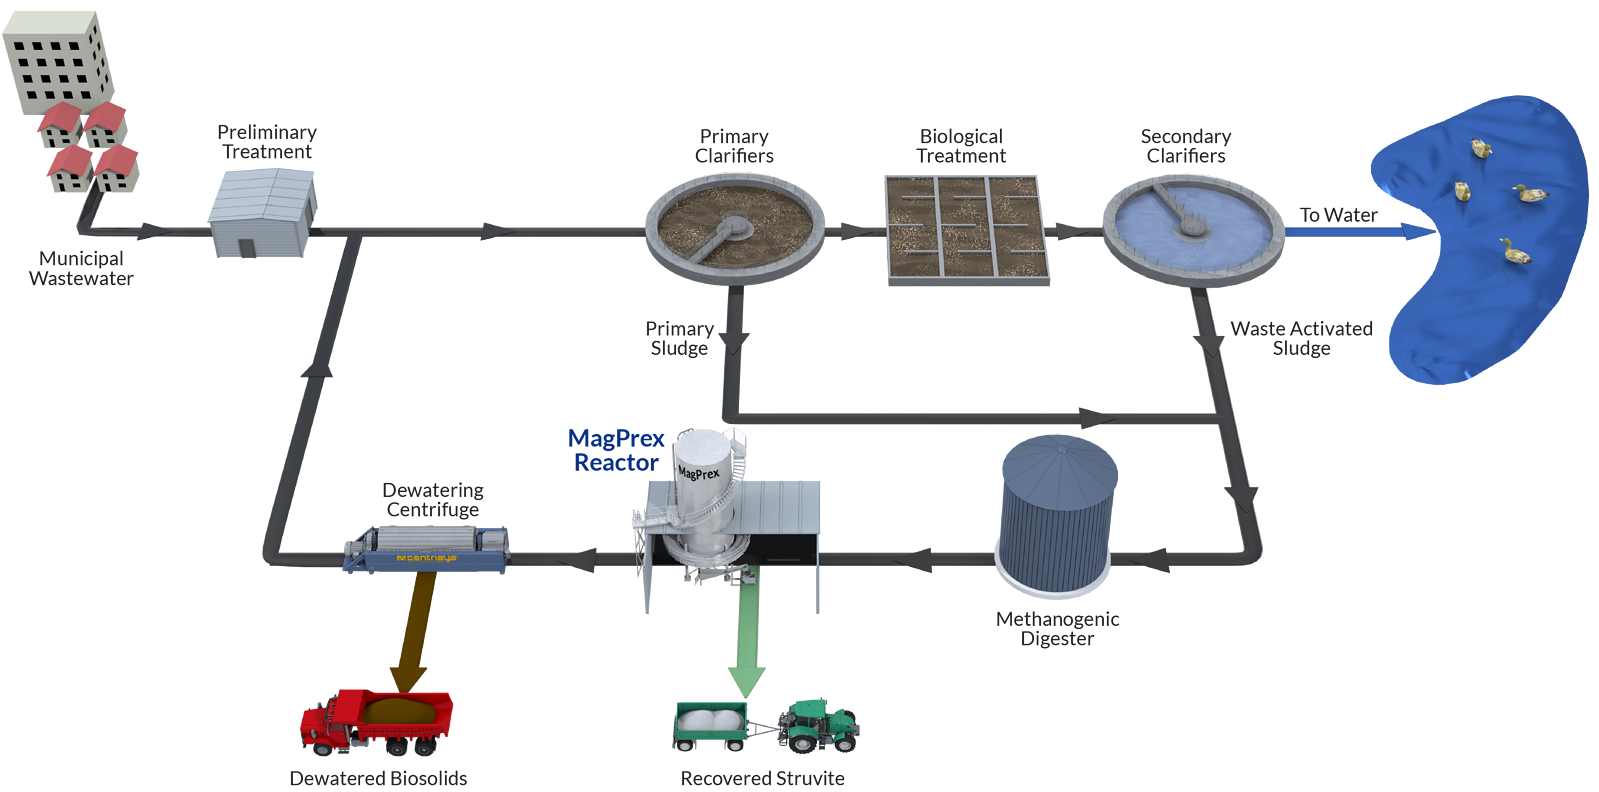 A wastewater reclamation plant diagram depicting the installation location of MagPrex™.